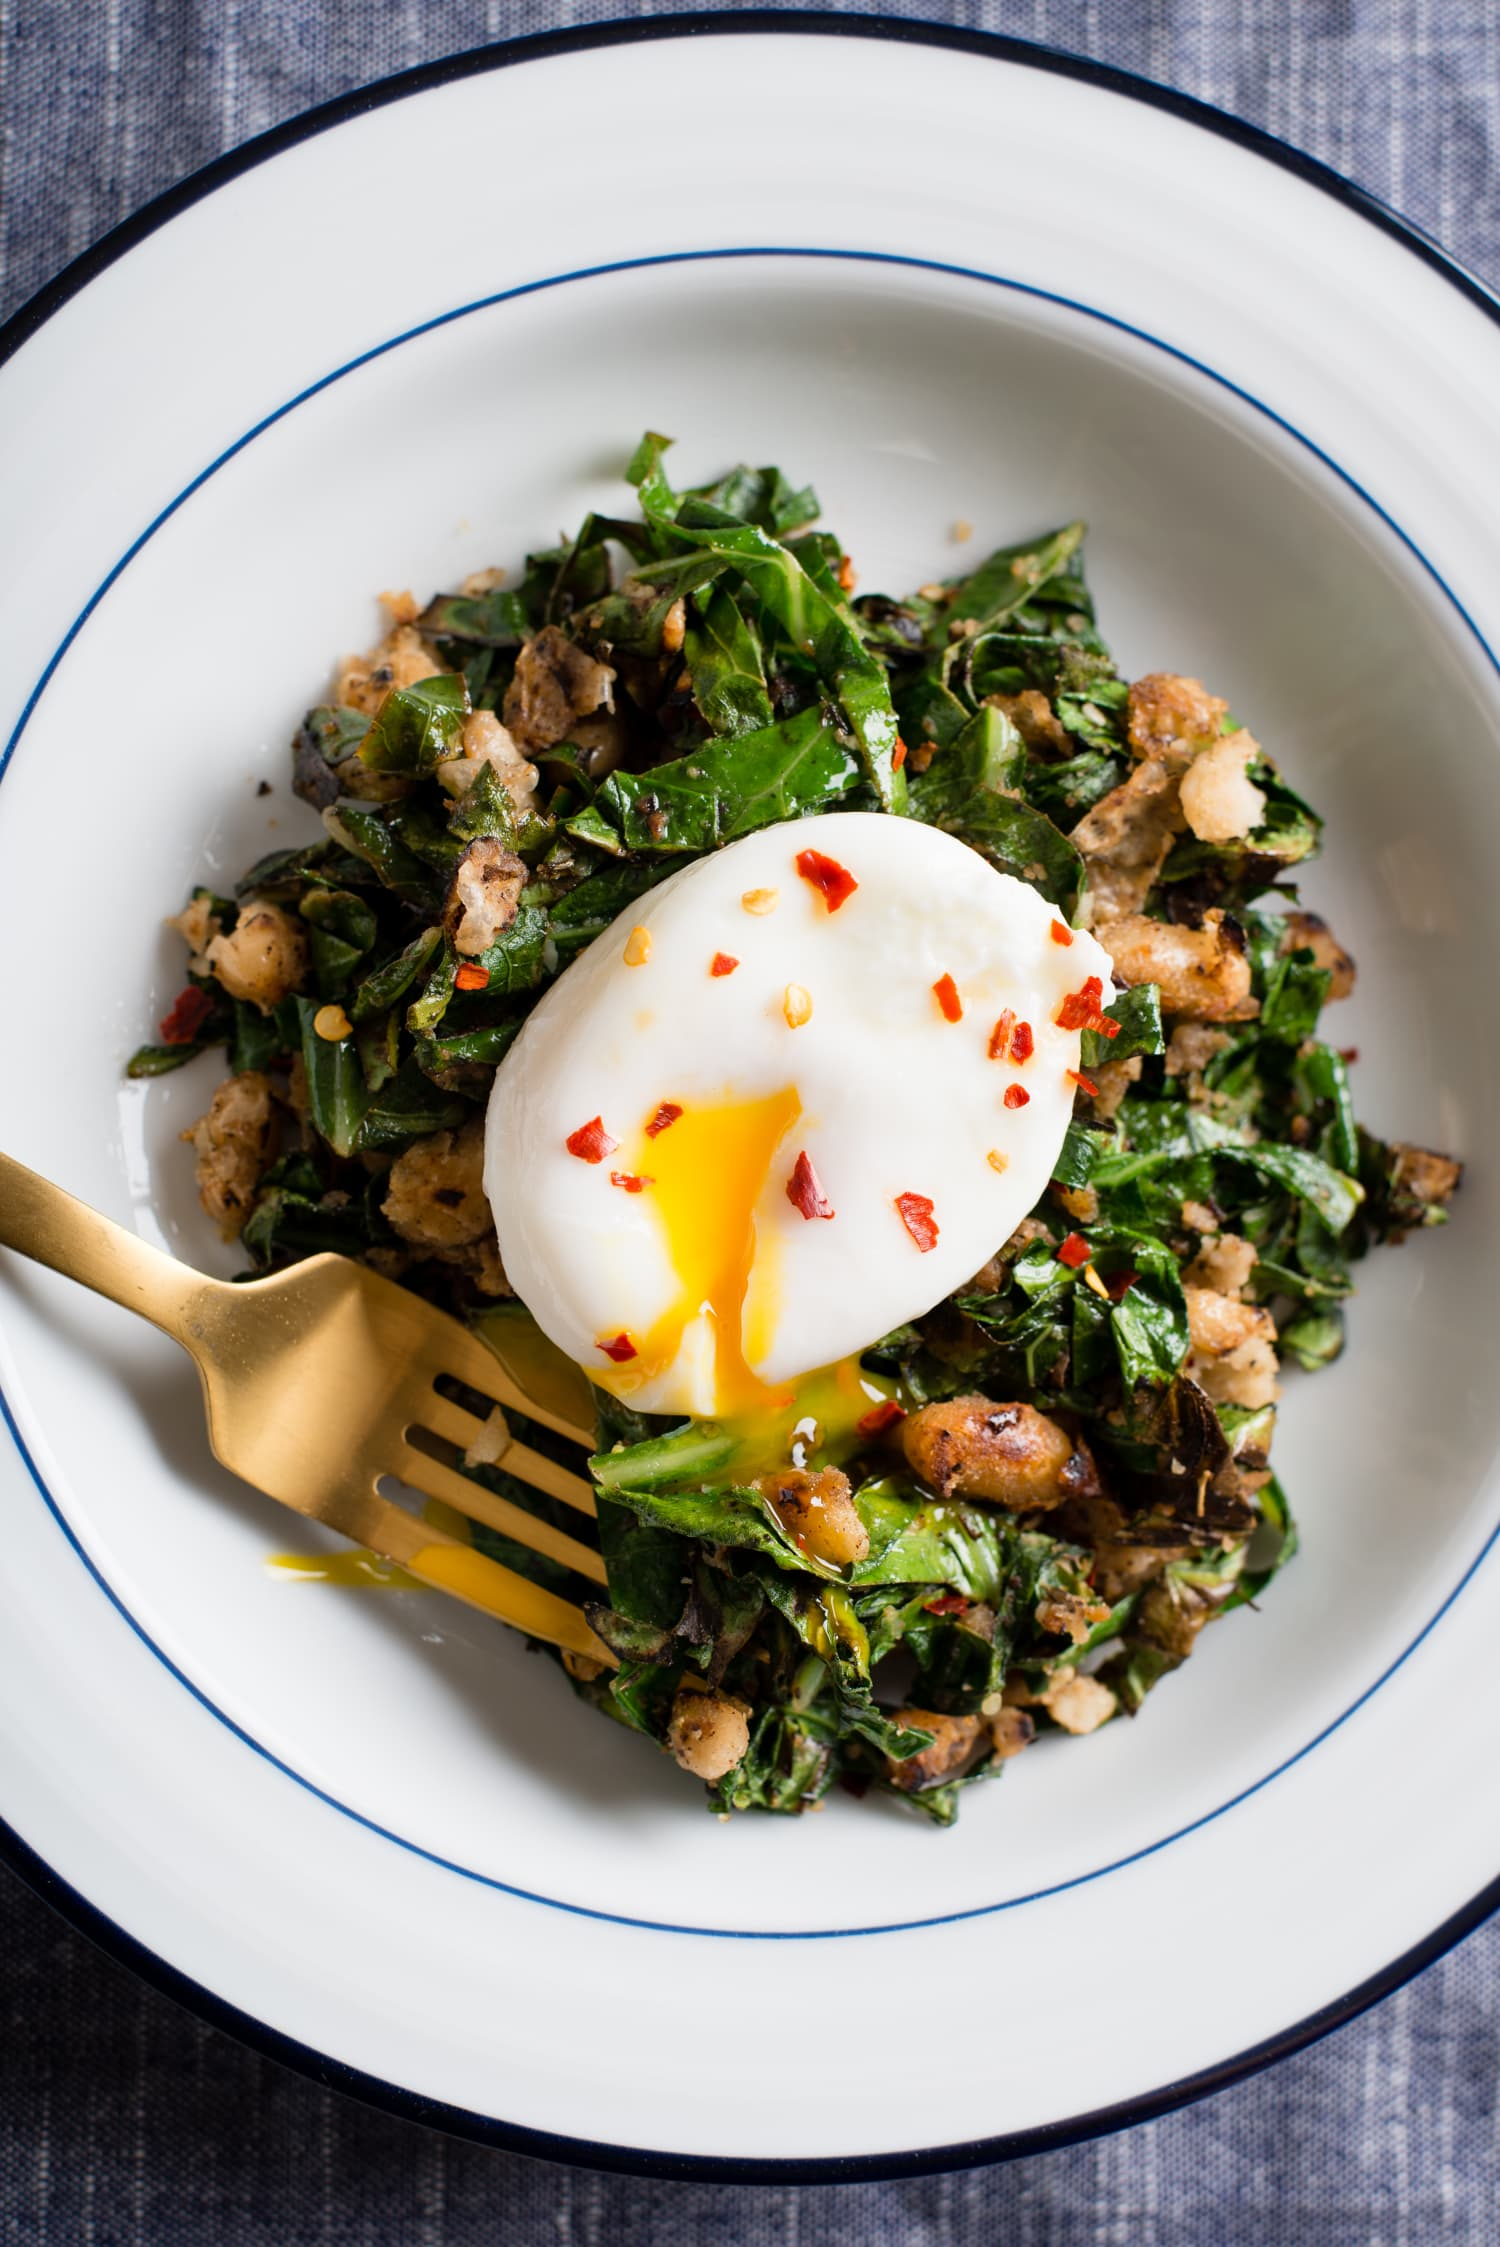 Recipe: Crispy White Beans with Greens and Poached Egg